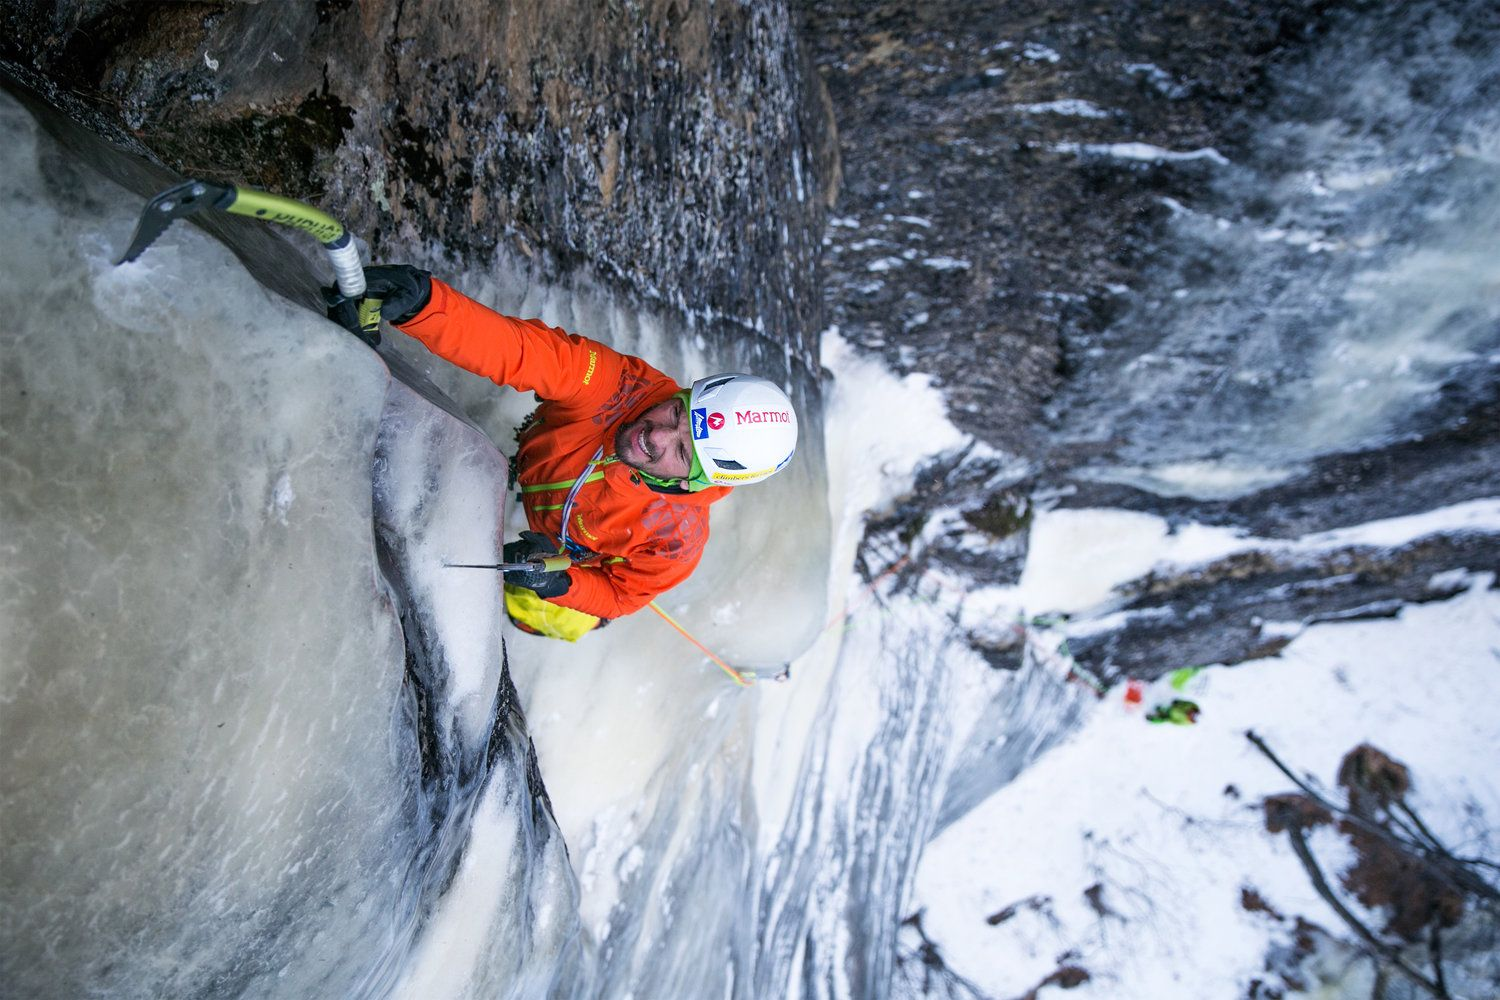 Benedikt Purner enjoys some lean climbing conditions in Norway.